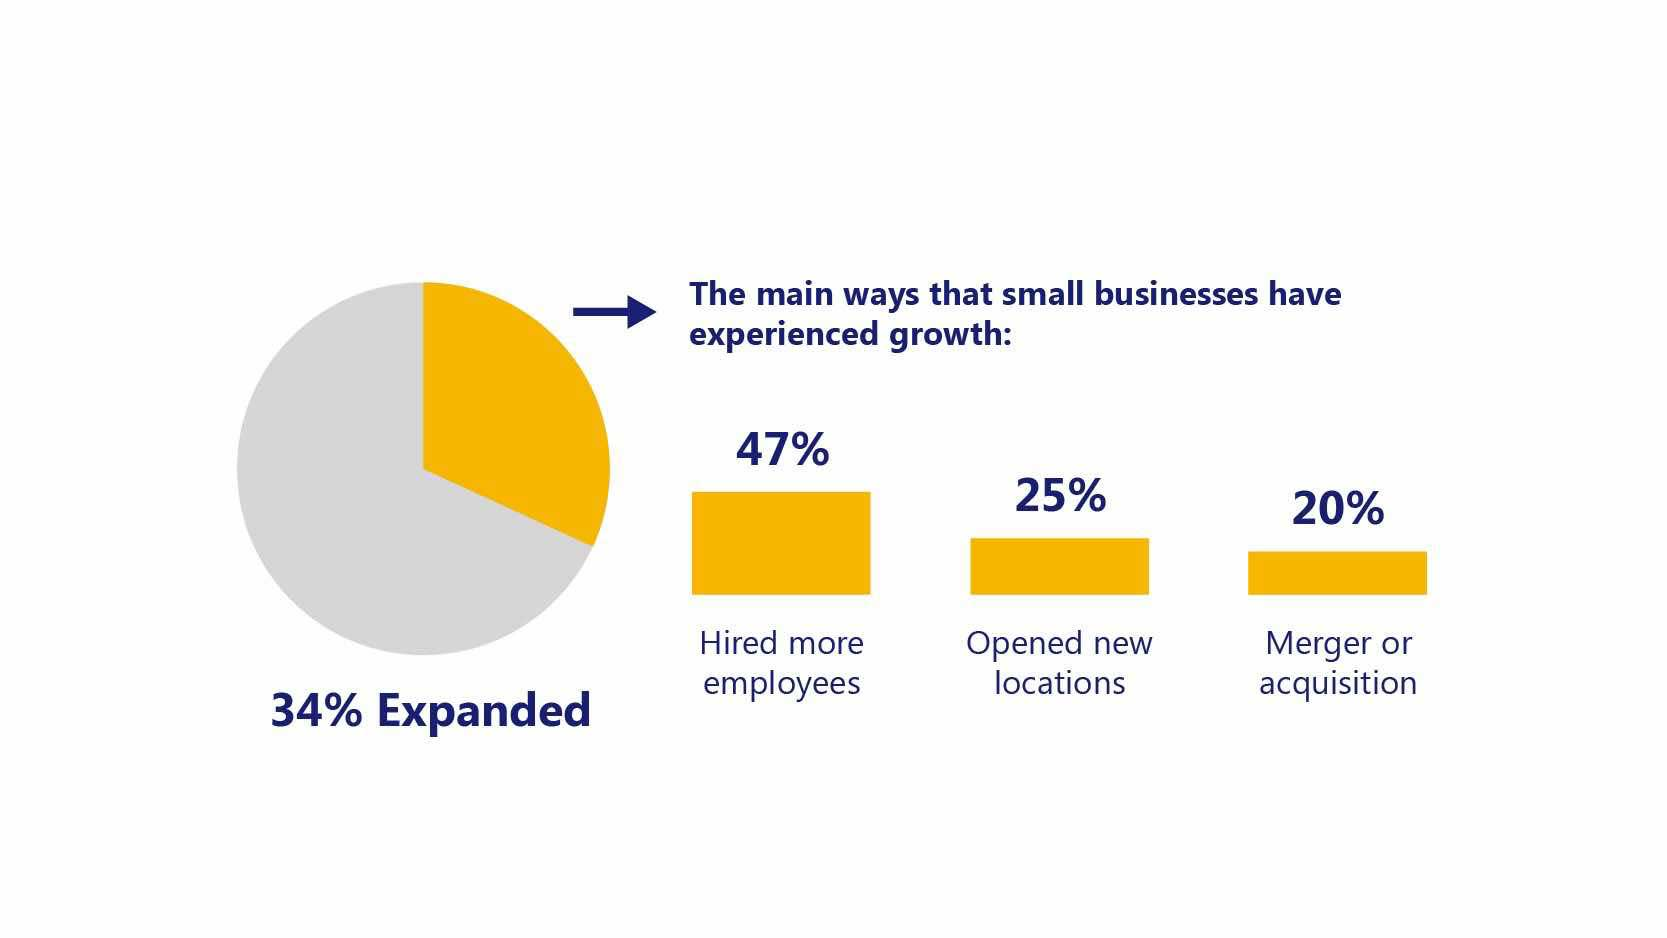 Pie chart shows 34% of small businesses have expanded, with 47% hiring more people, 25% adding new locations and 20% growing by mergers/acquisitions.